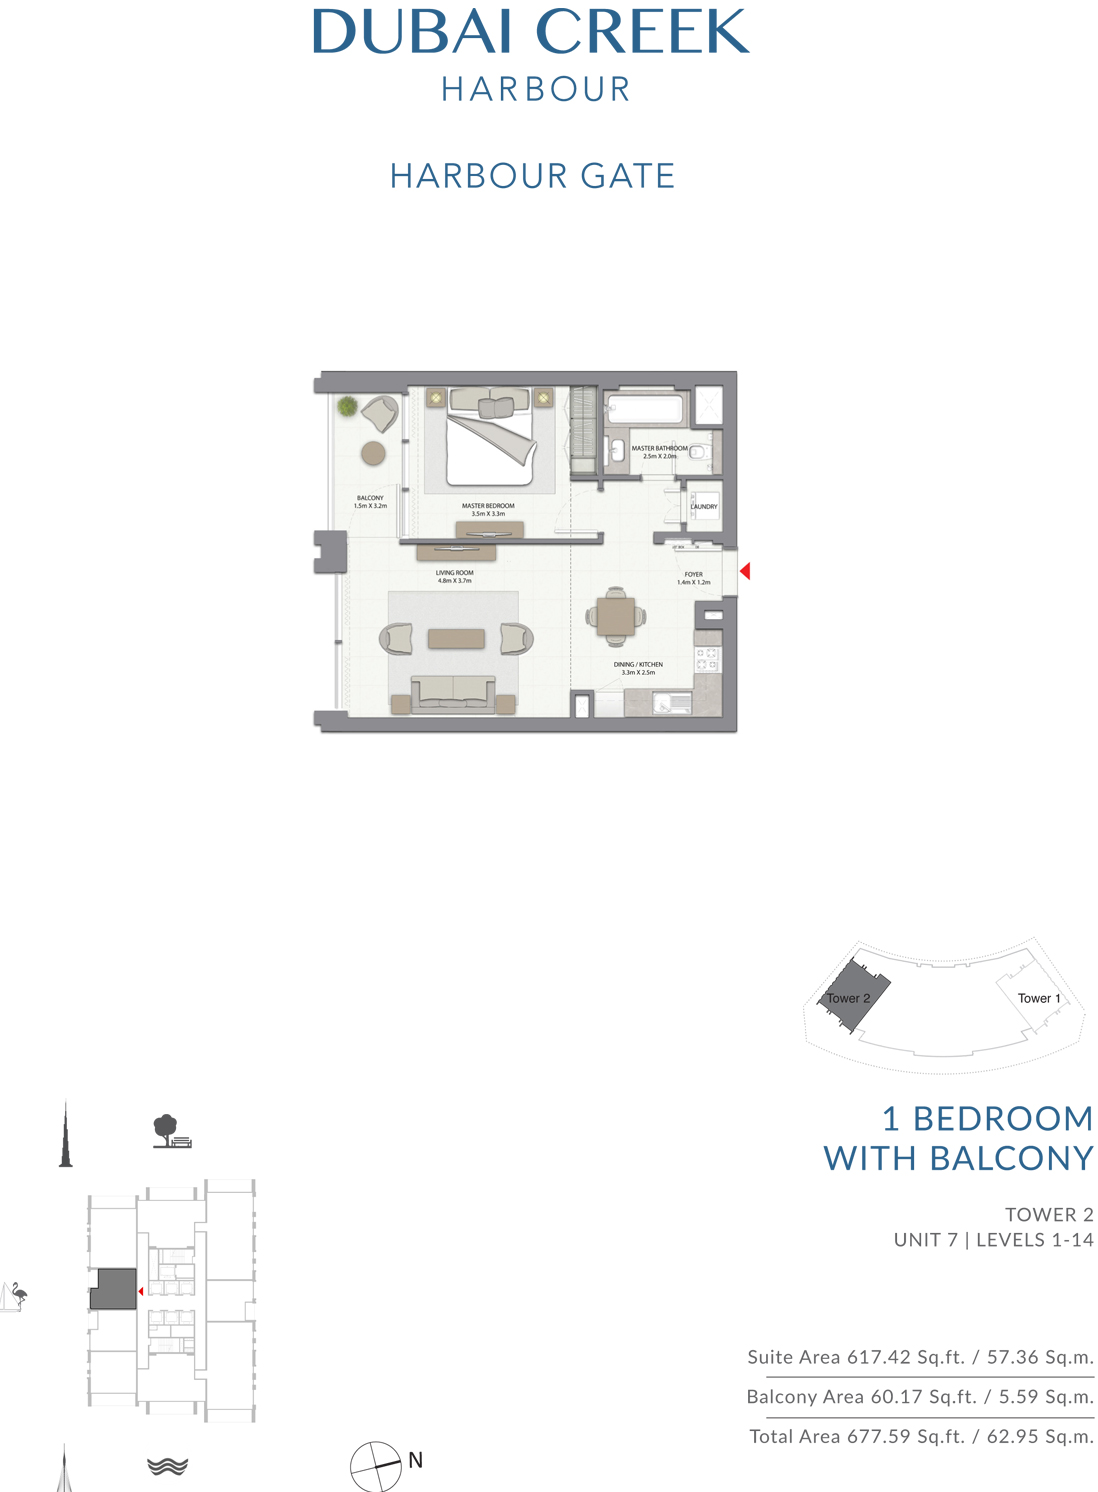 1 Bed with Balcony T2-U7-L1-14